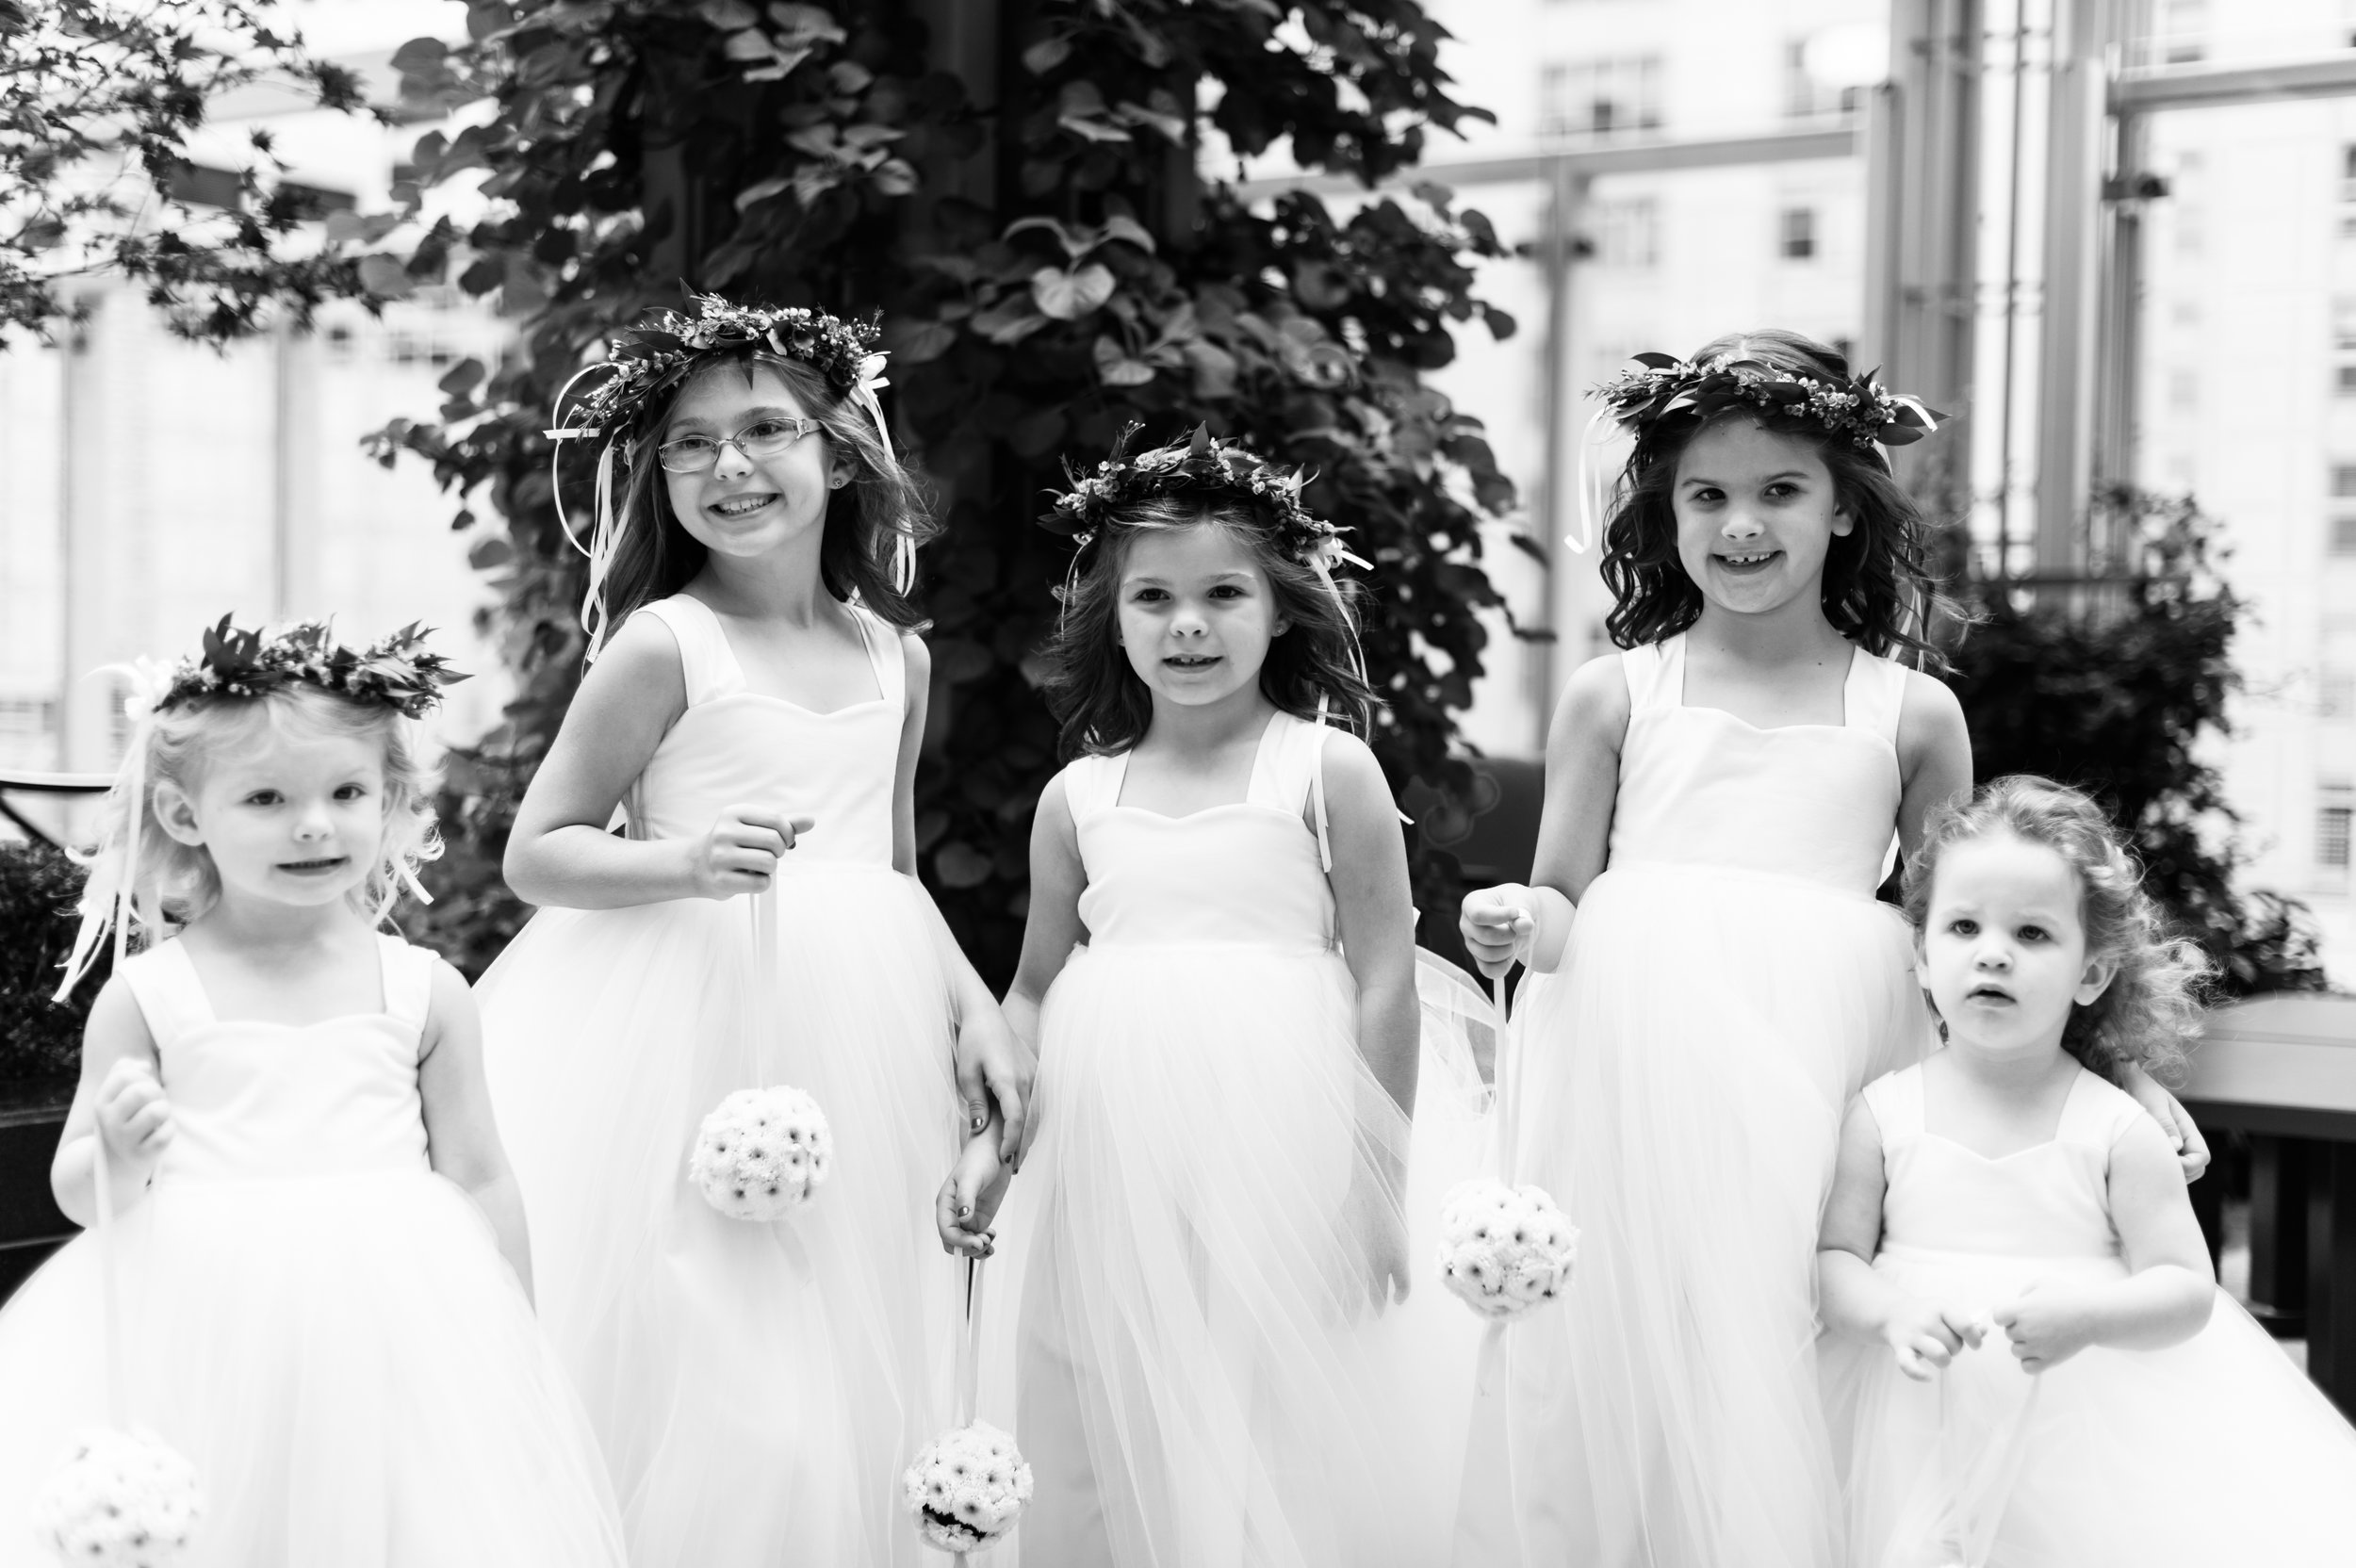 flowers girls wedding photography